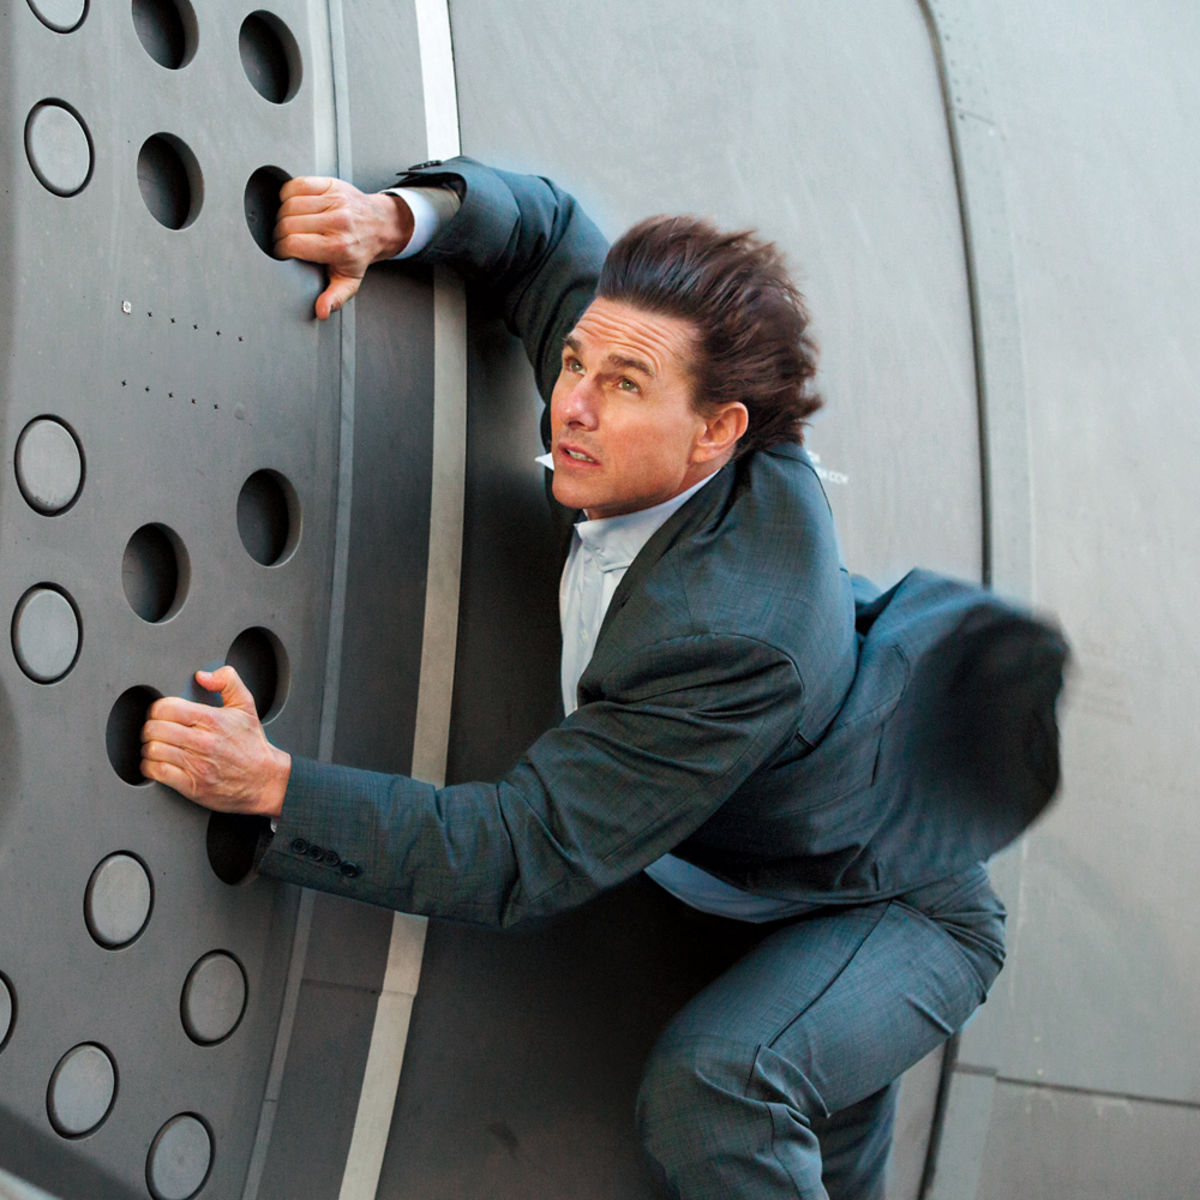 mission-impossible-rogue-nation-tom-cruise.jpg